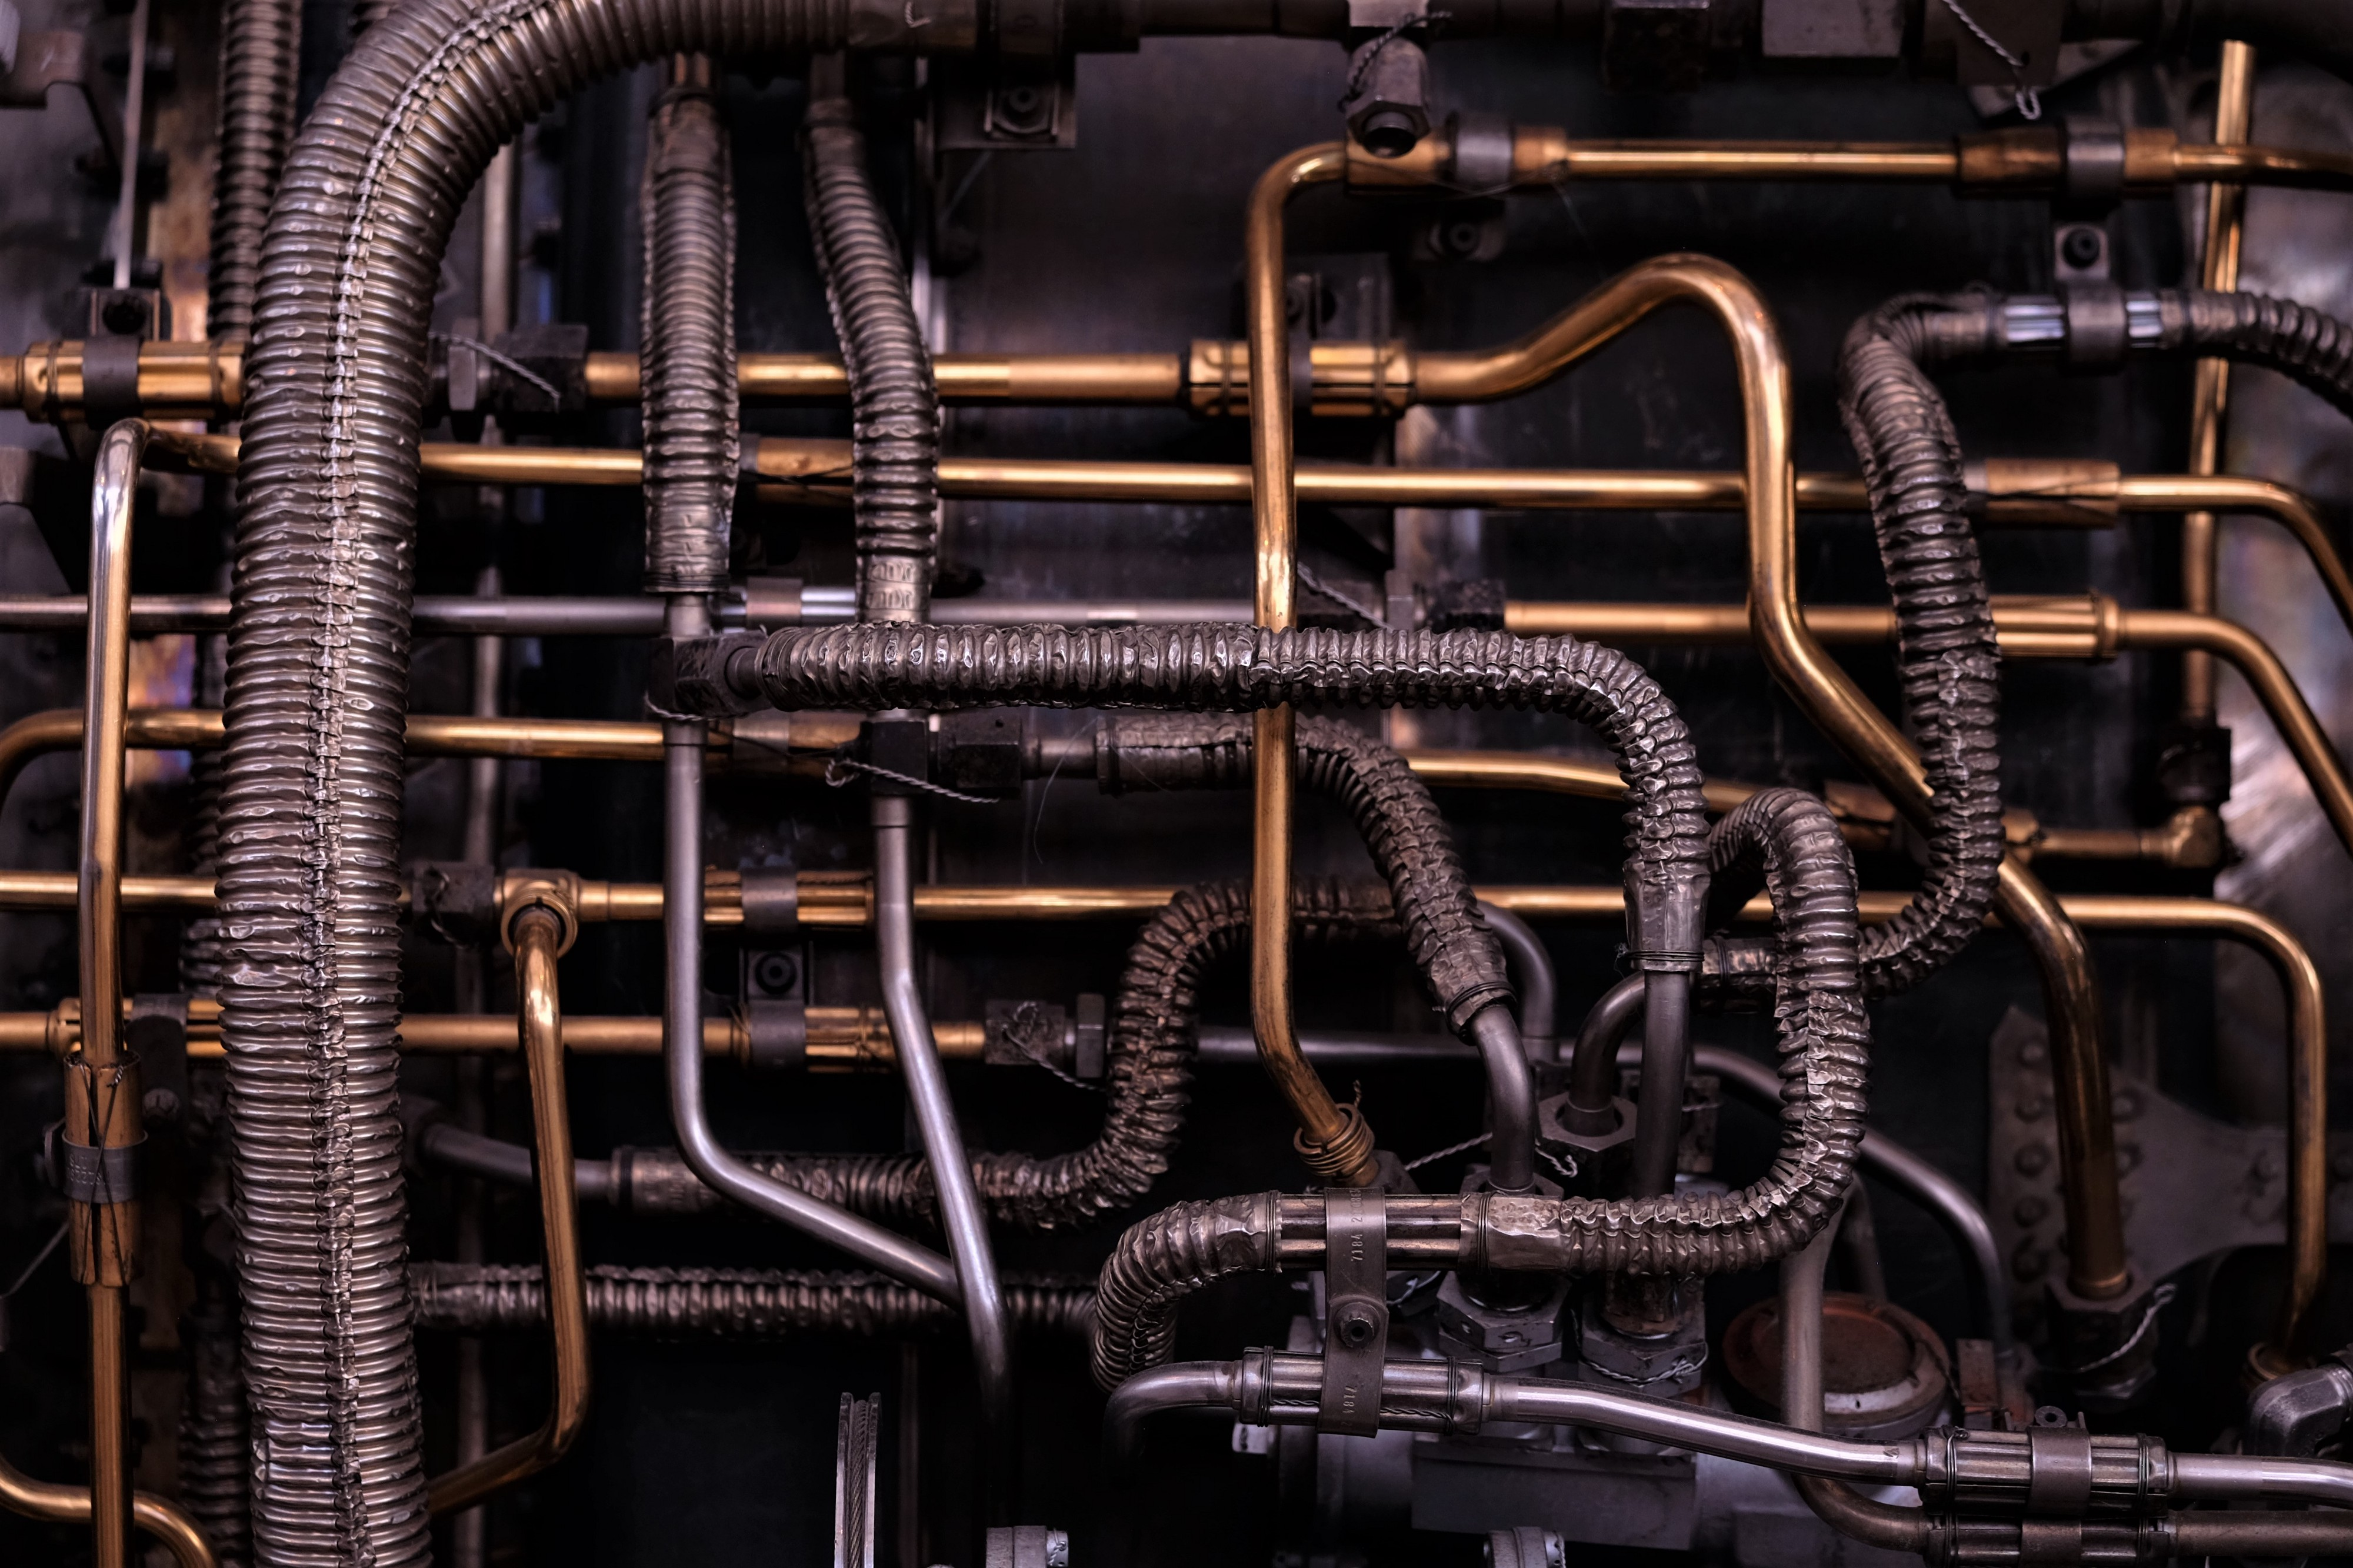 Predictive Maintenance: detect Faults from Sensors with CNN